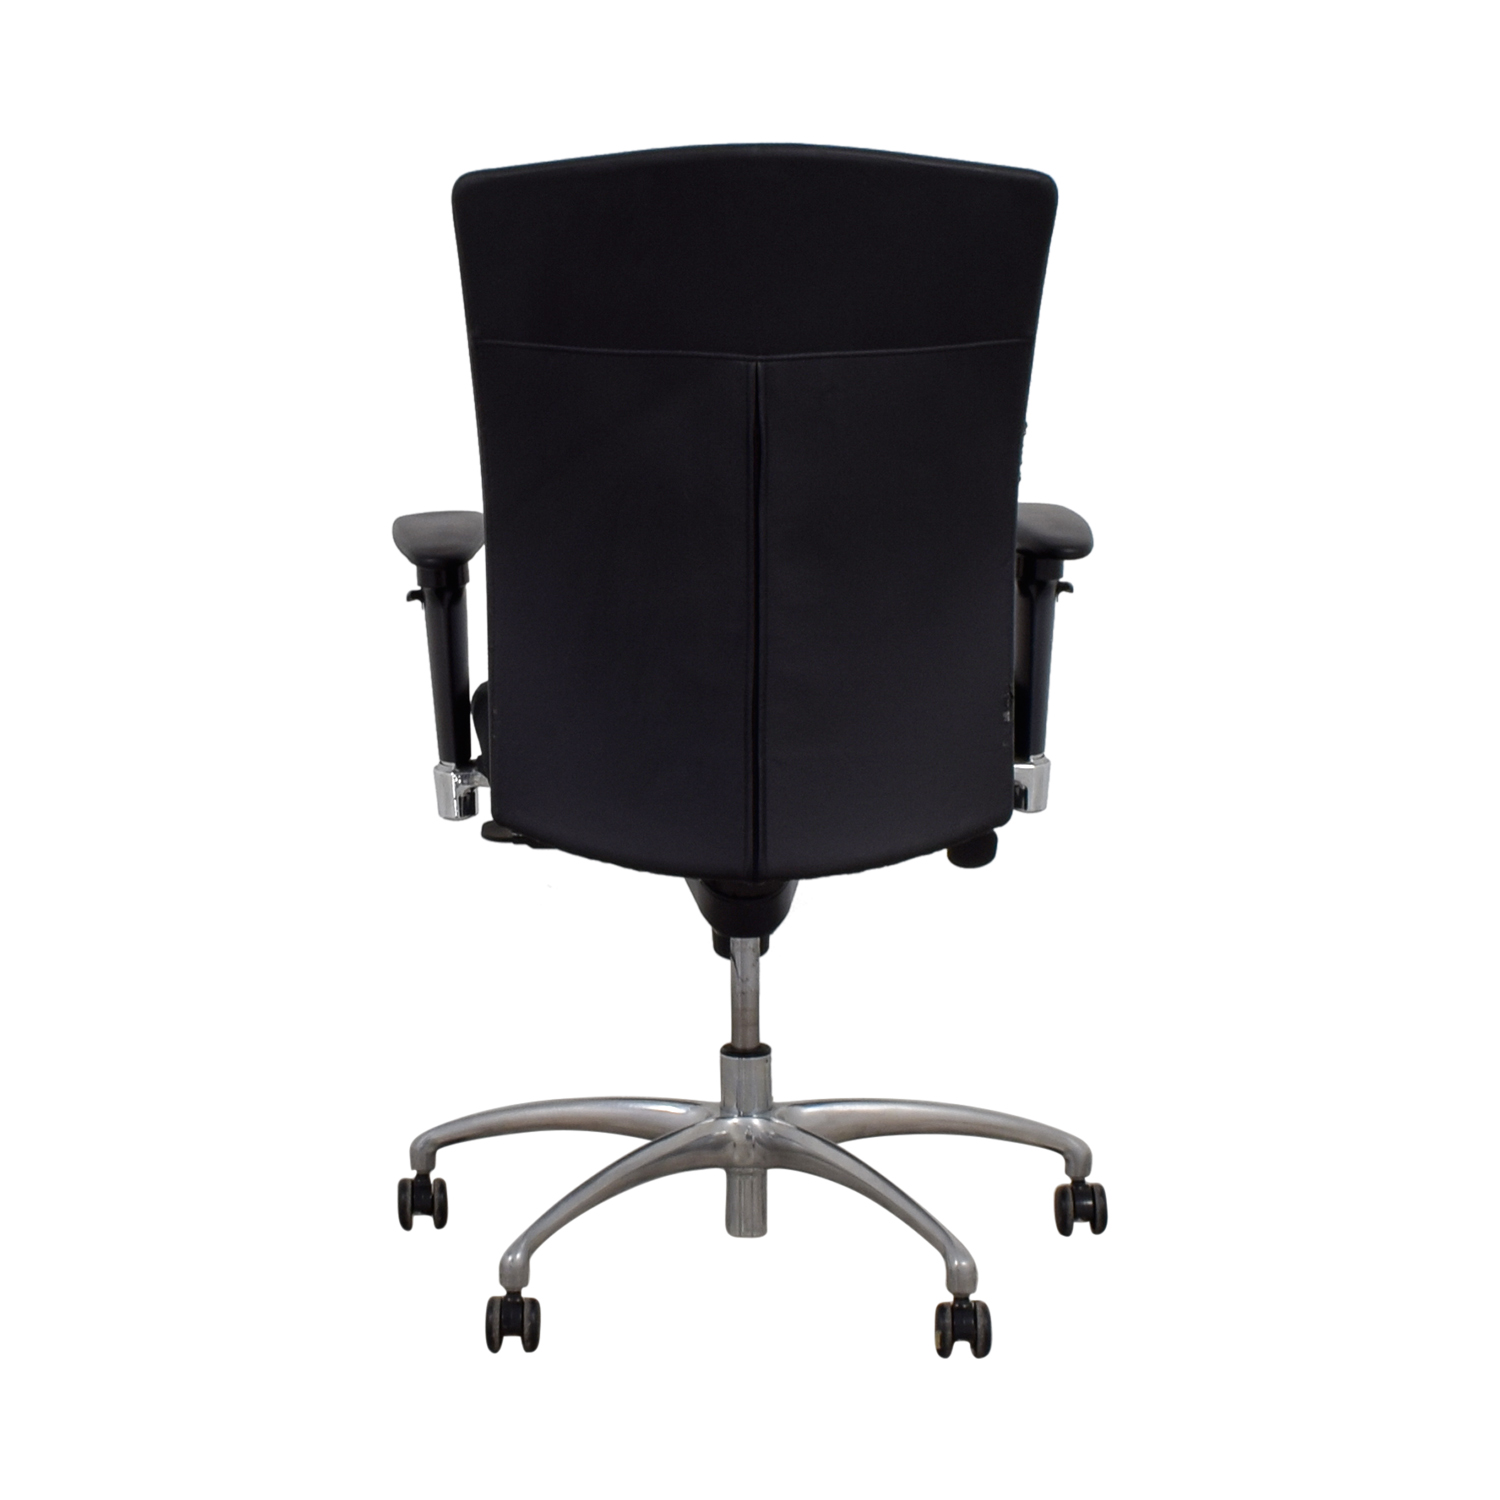 office cryomatsorg chairs executive decoration interesting home sale for outstanding crafts